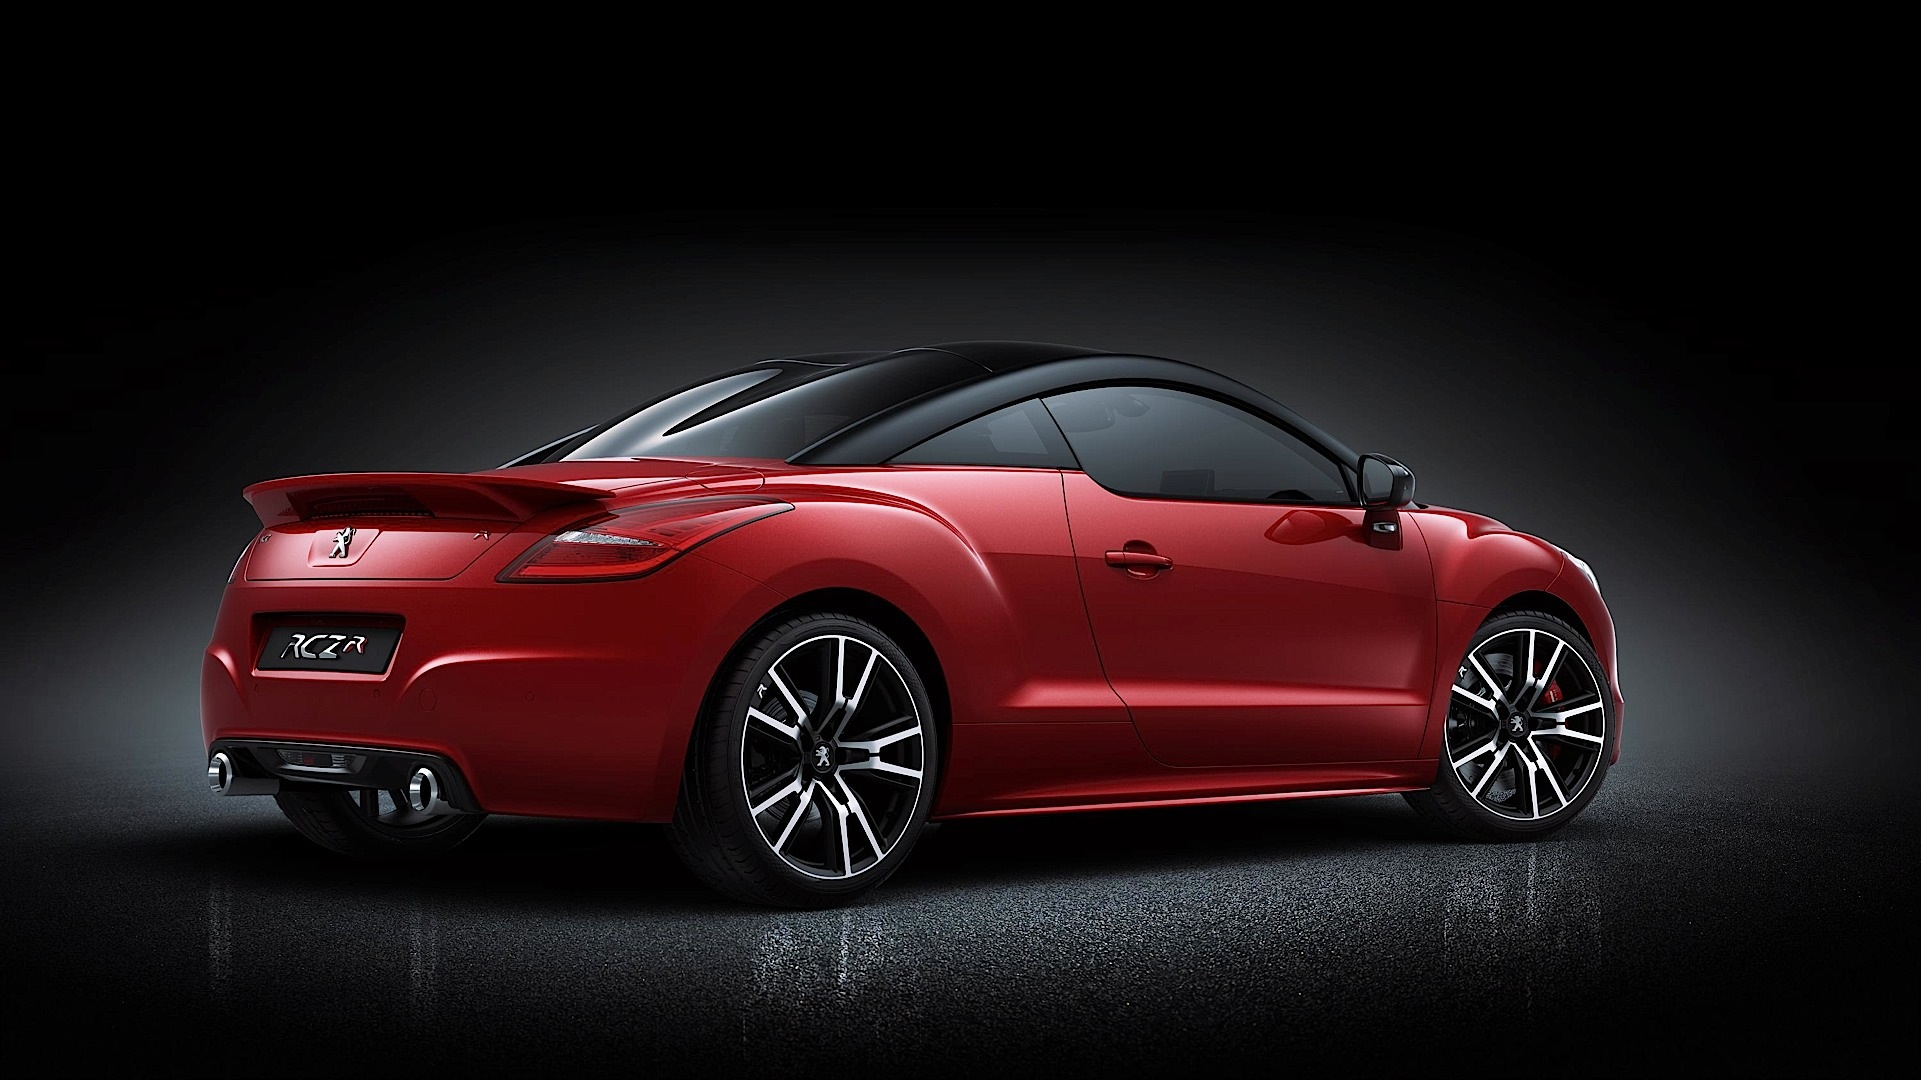 peugeot rcz r officially revealed autoevolution. Black Bedroom Furniture Sets. Home Design Ideas